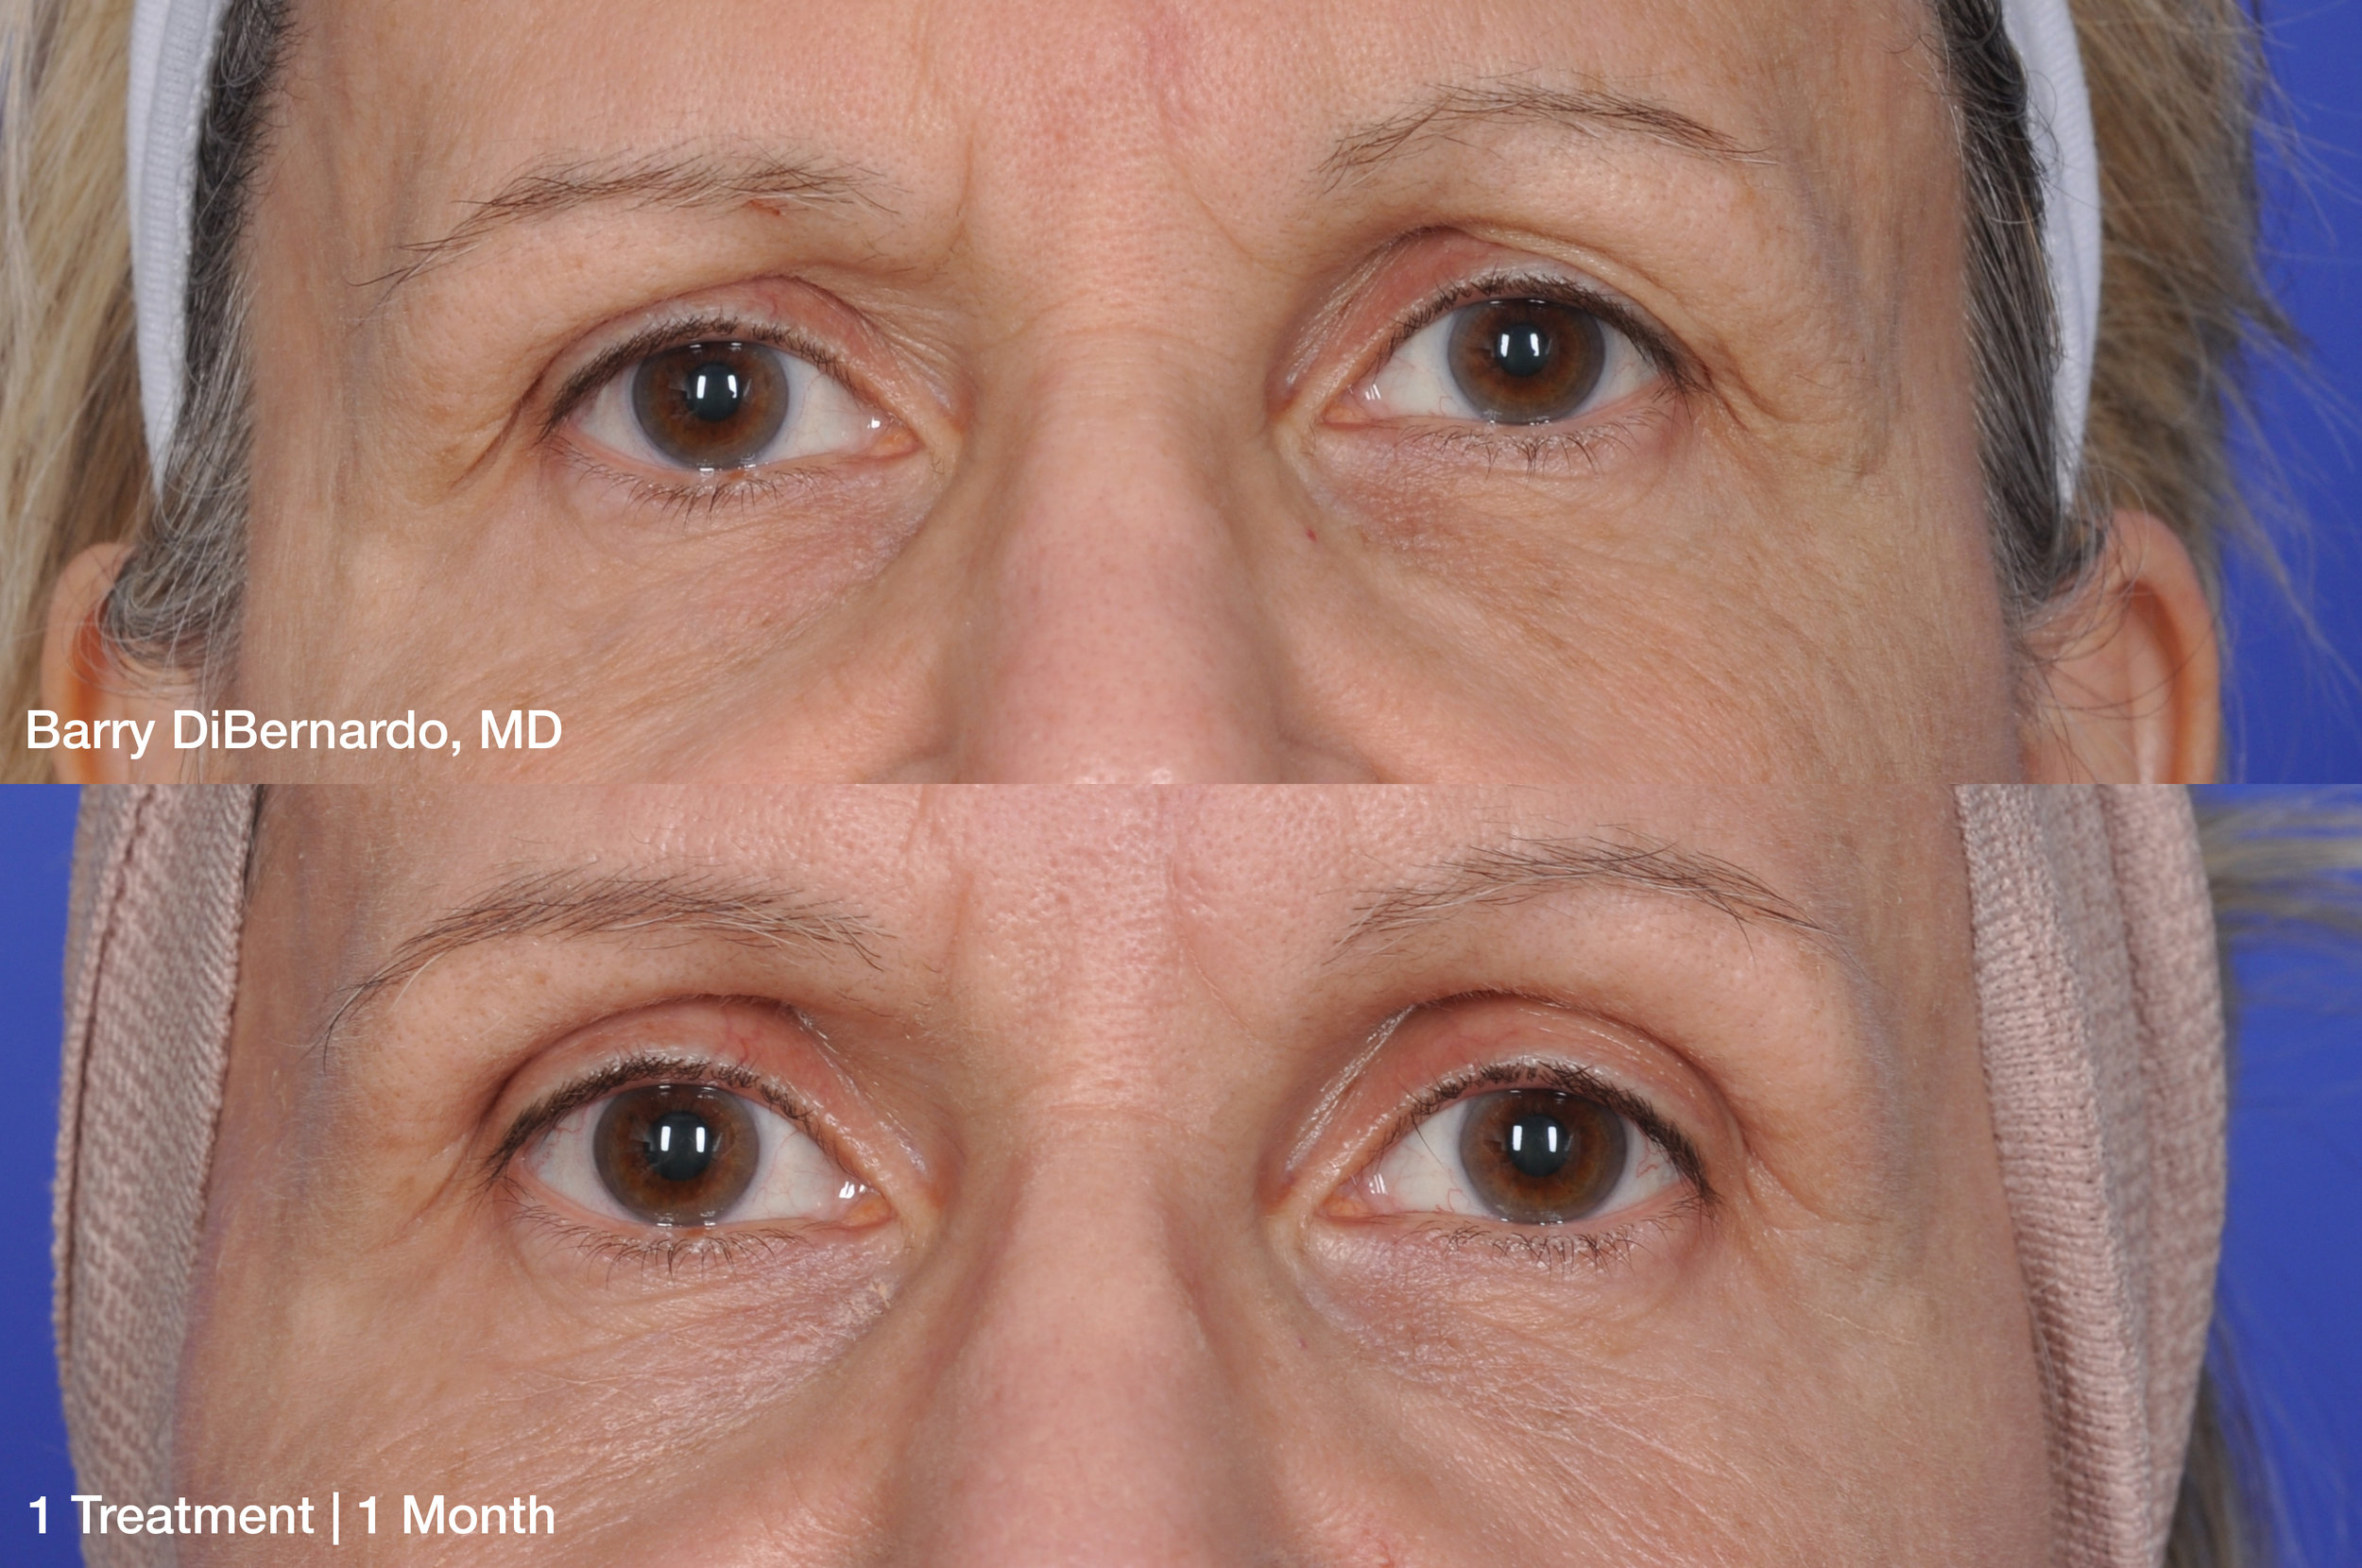 Barry-DiBernardo_ThermiSmooth-Face-Eyes_1-treatment-1-Month_Patient-1.jpg